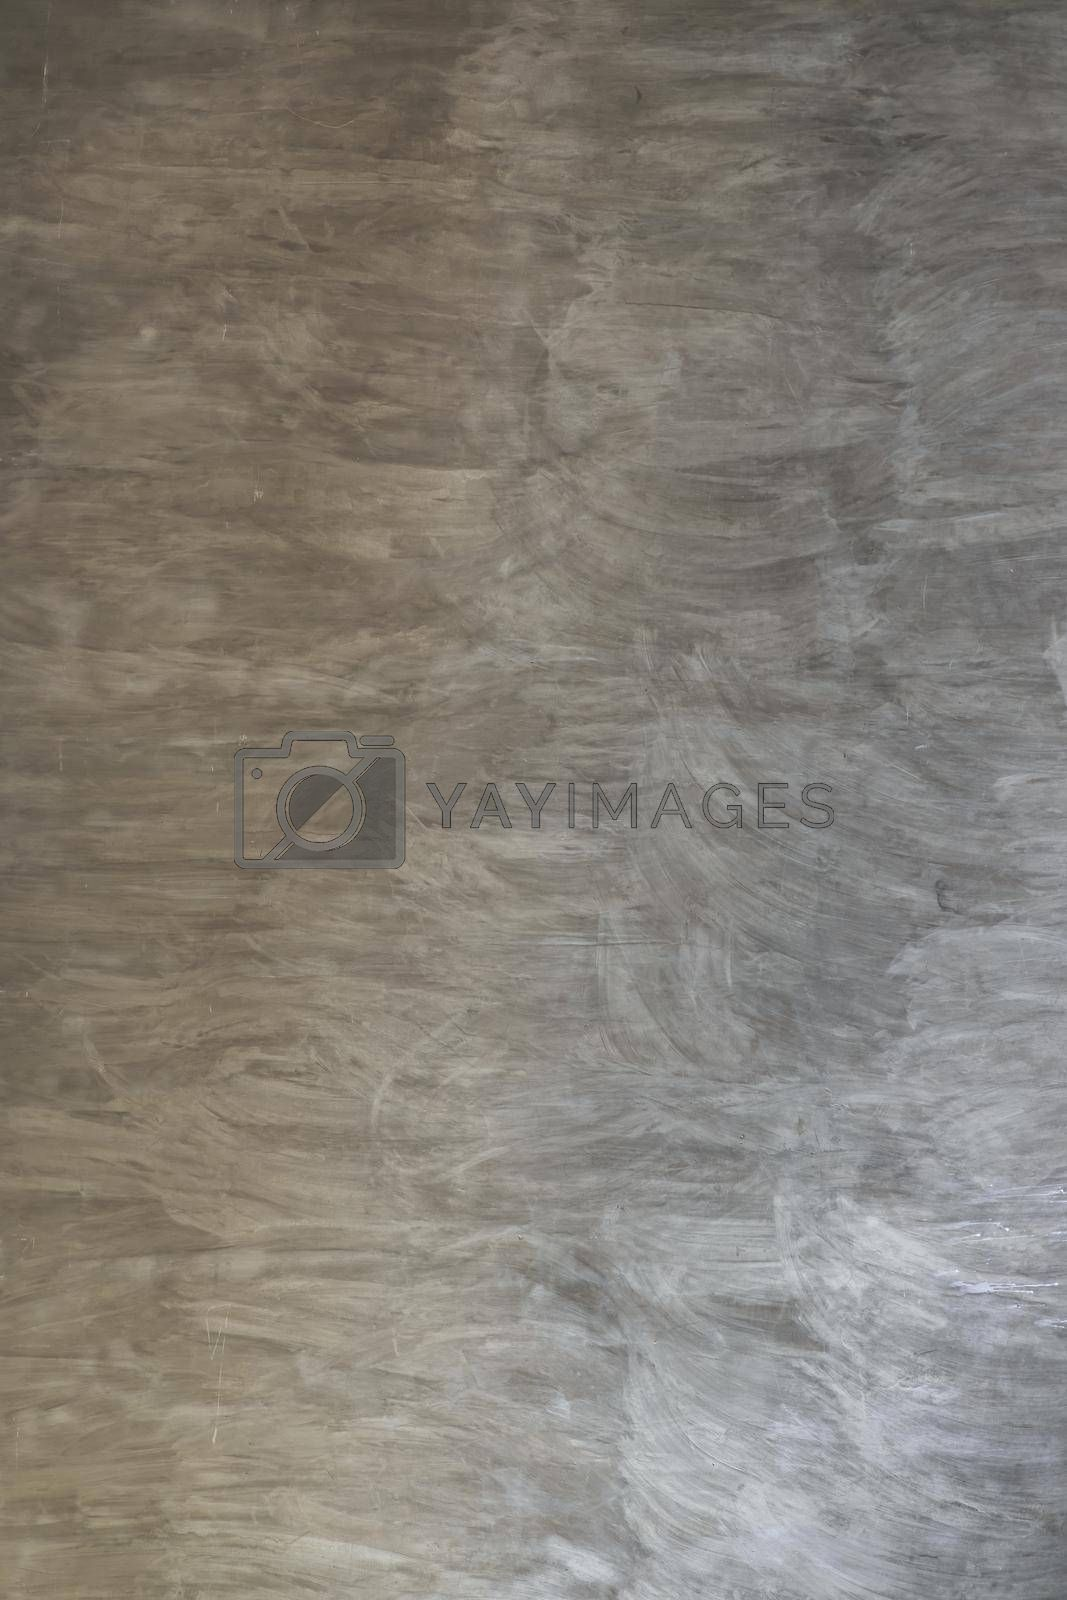 Textured surface of old concrete wall. Old wall texture grunge background. Space for your text. Selective focus.